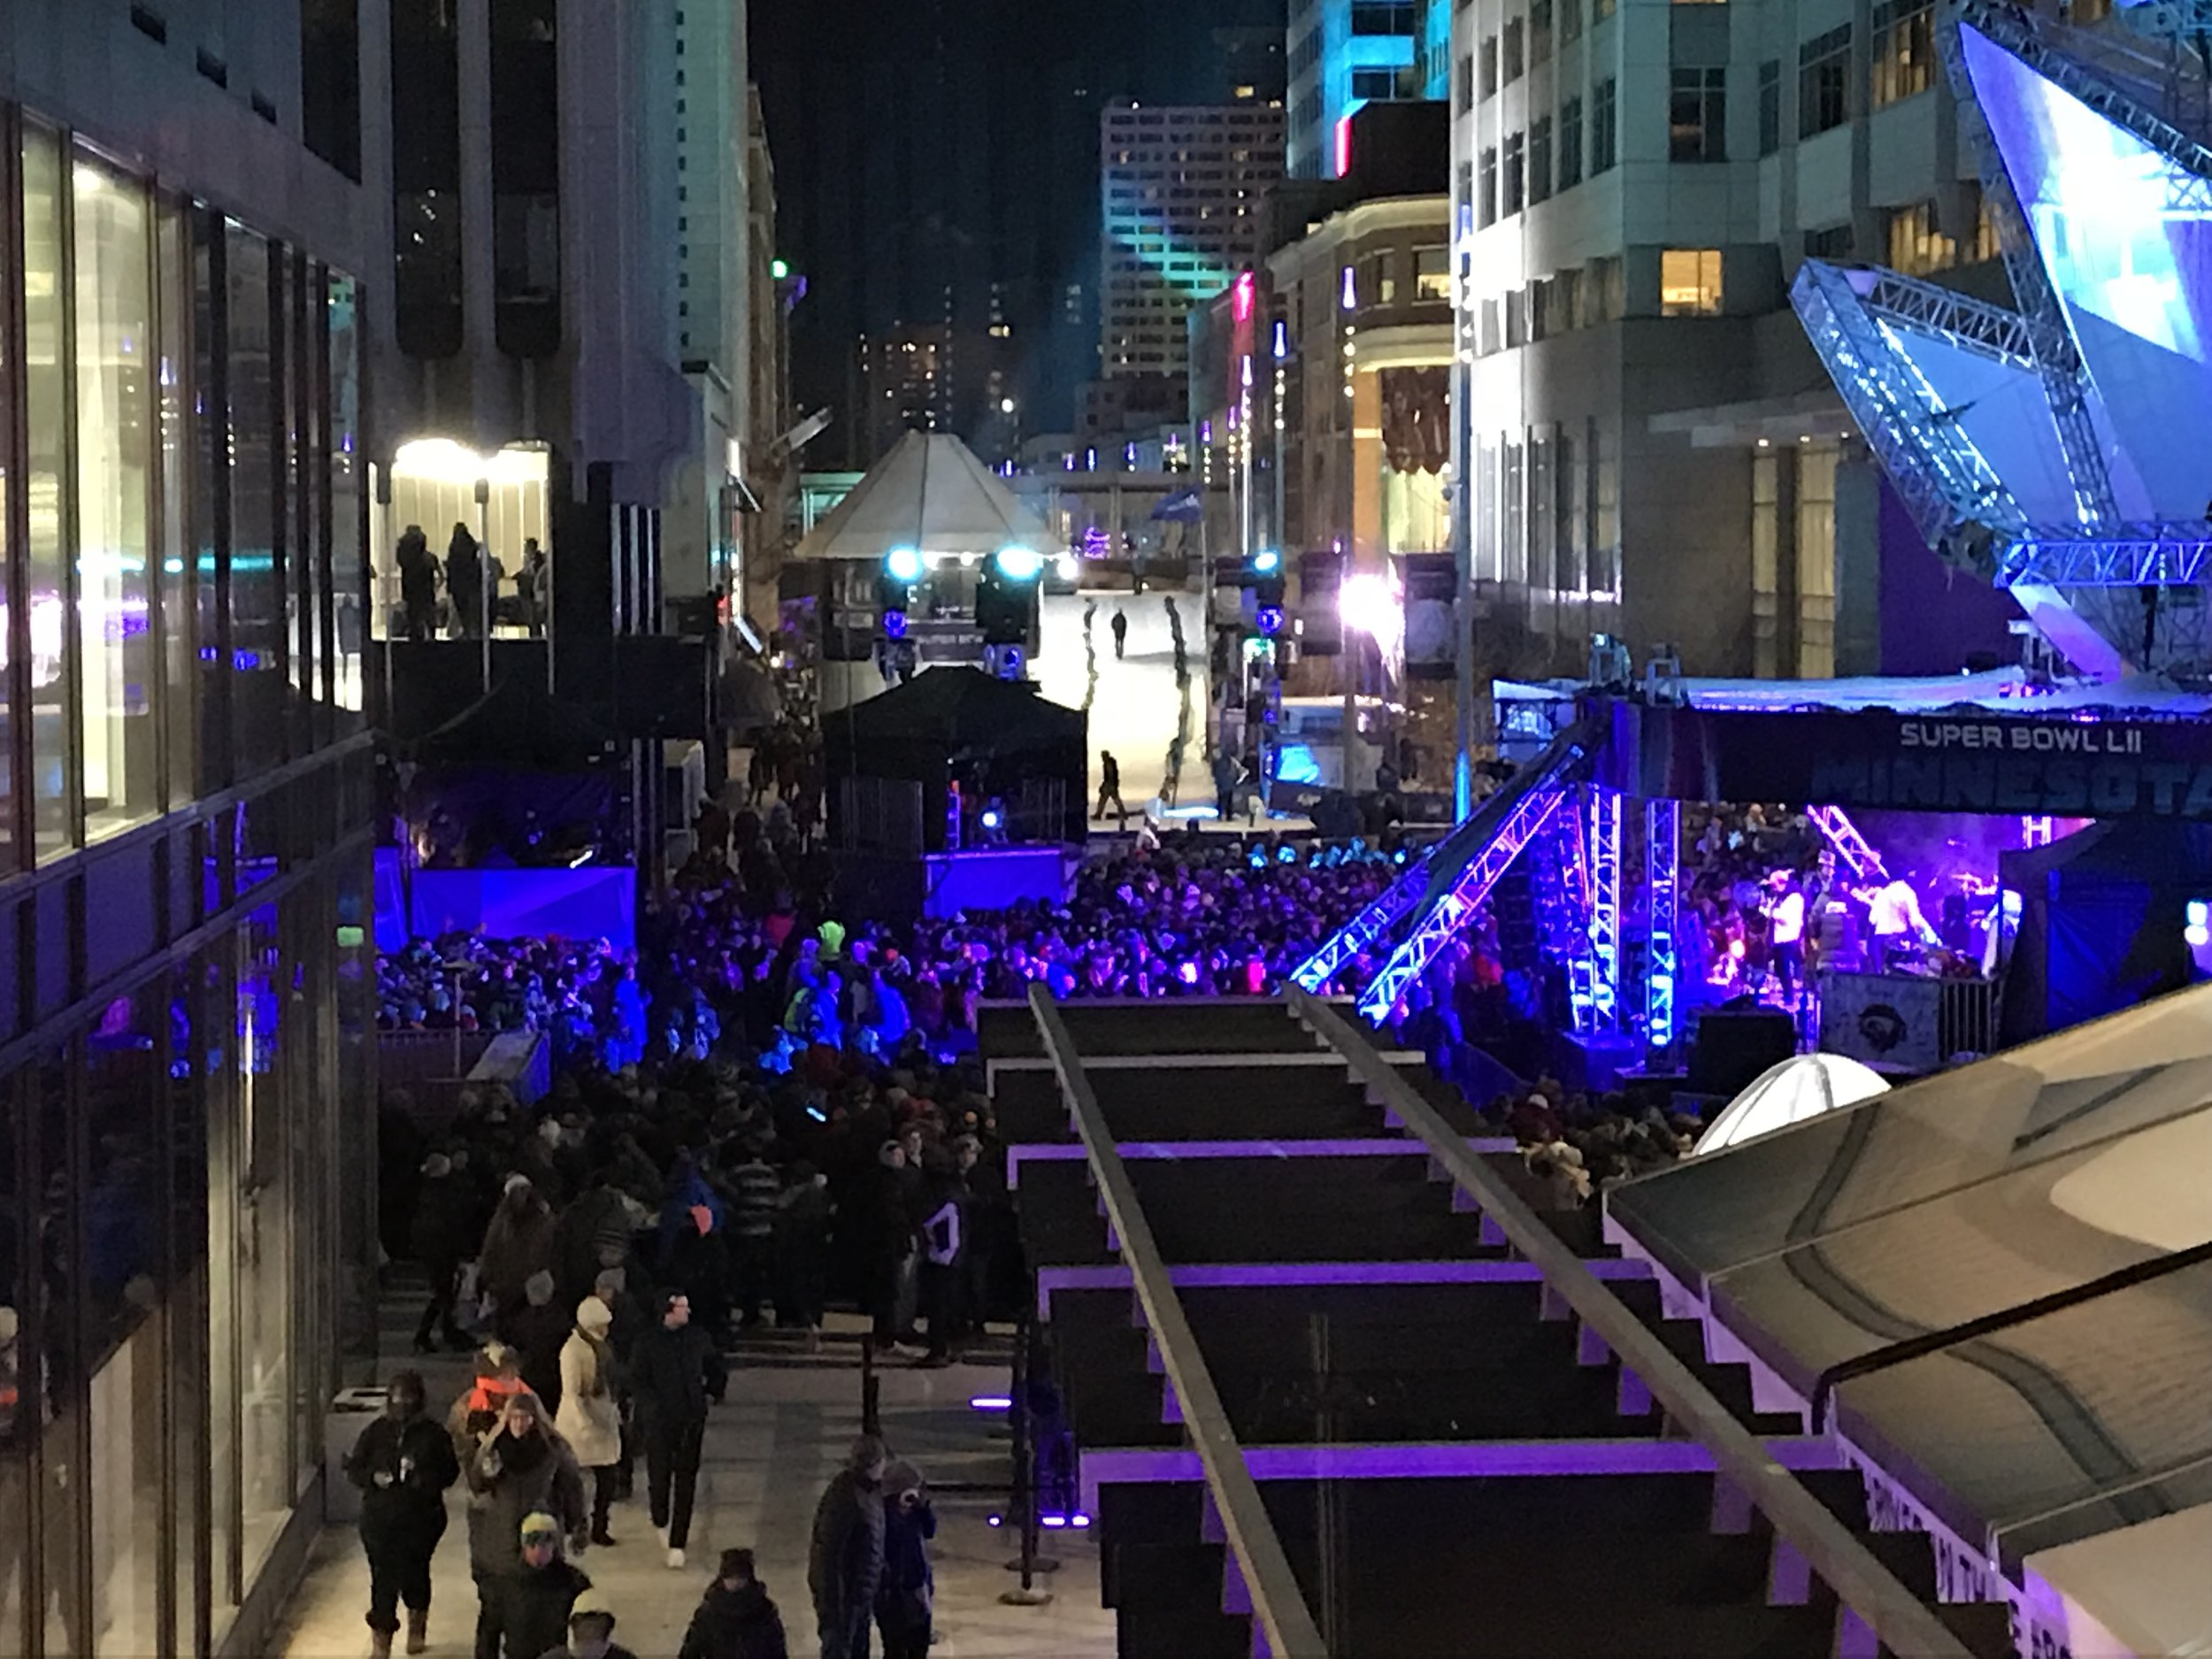 Super Bowl Live Concert Series